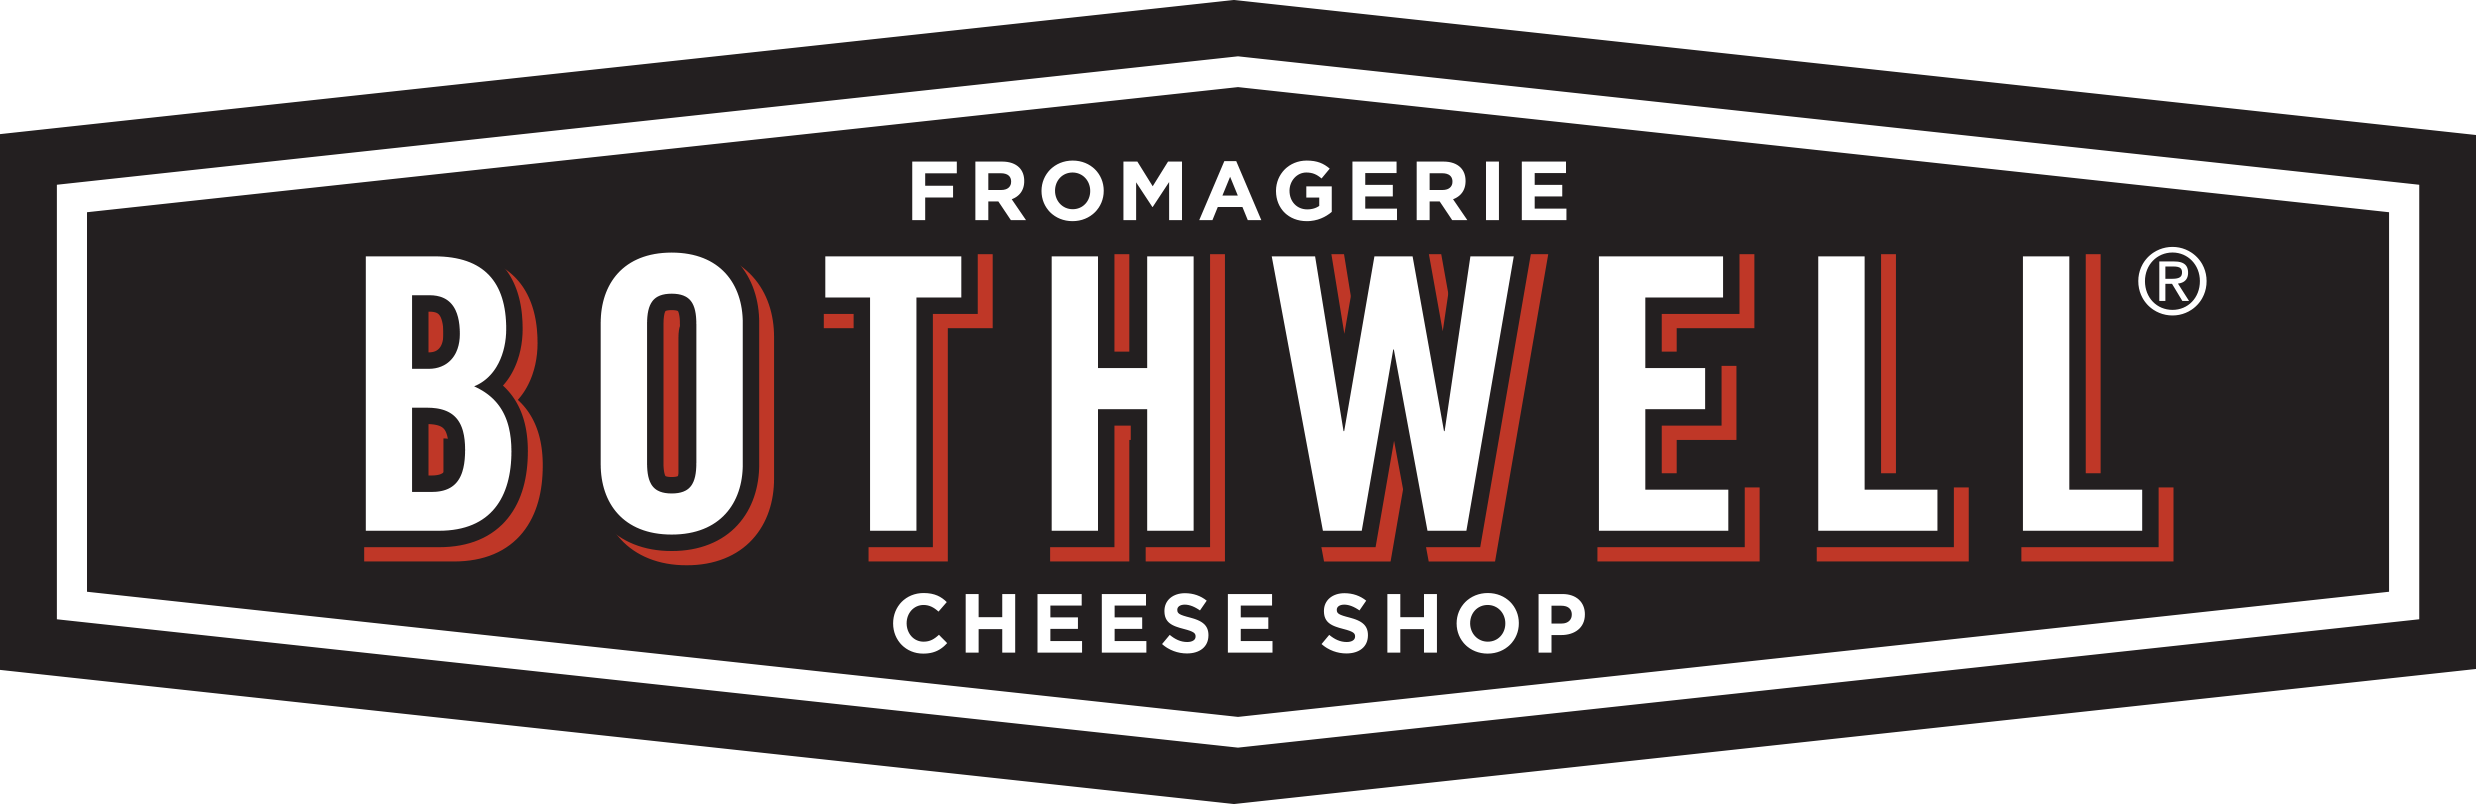 Bothwell-Cheese-Shop-Logo-Vs1_F1.png